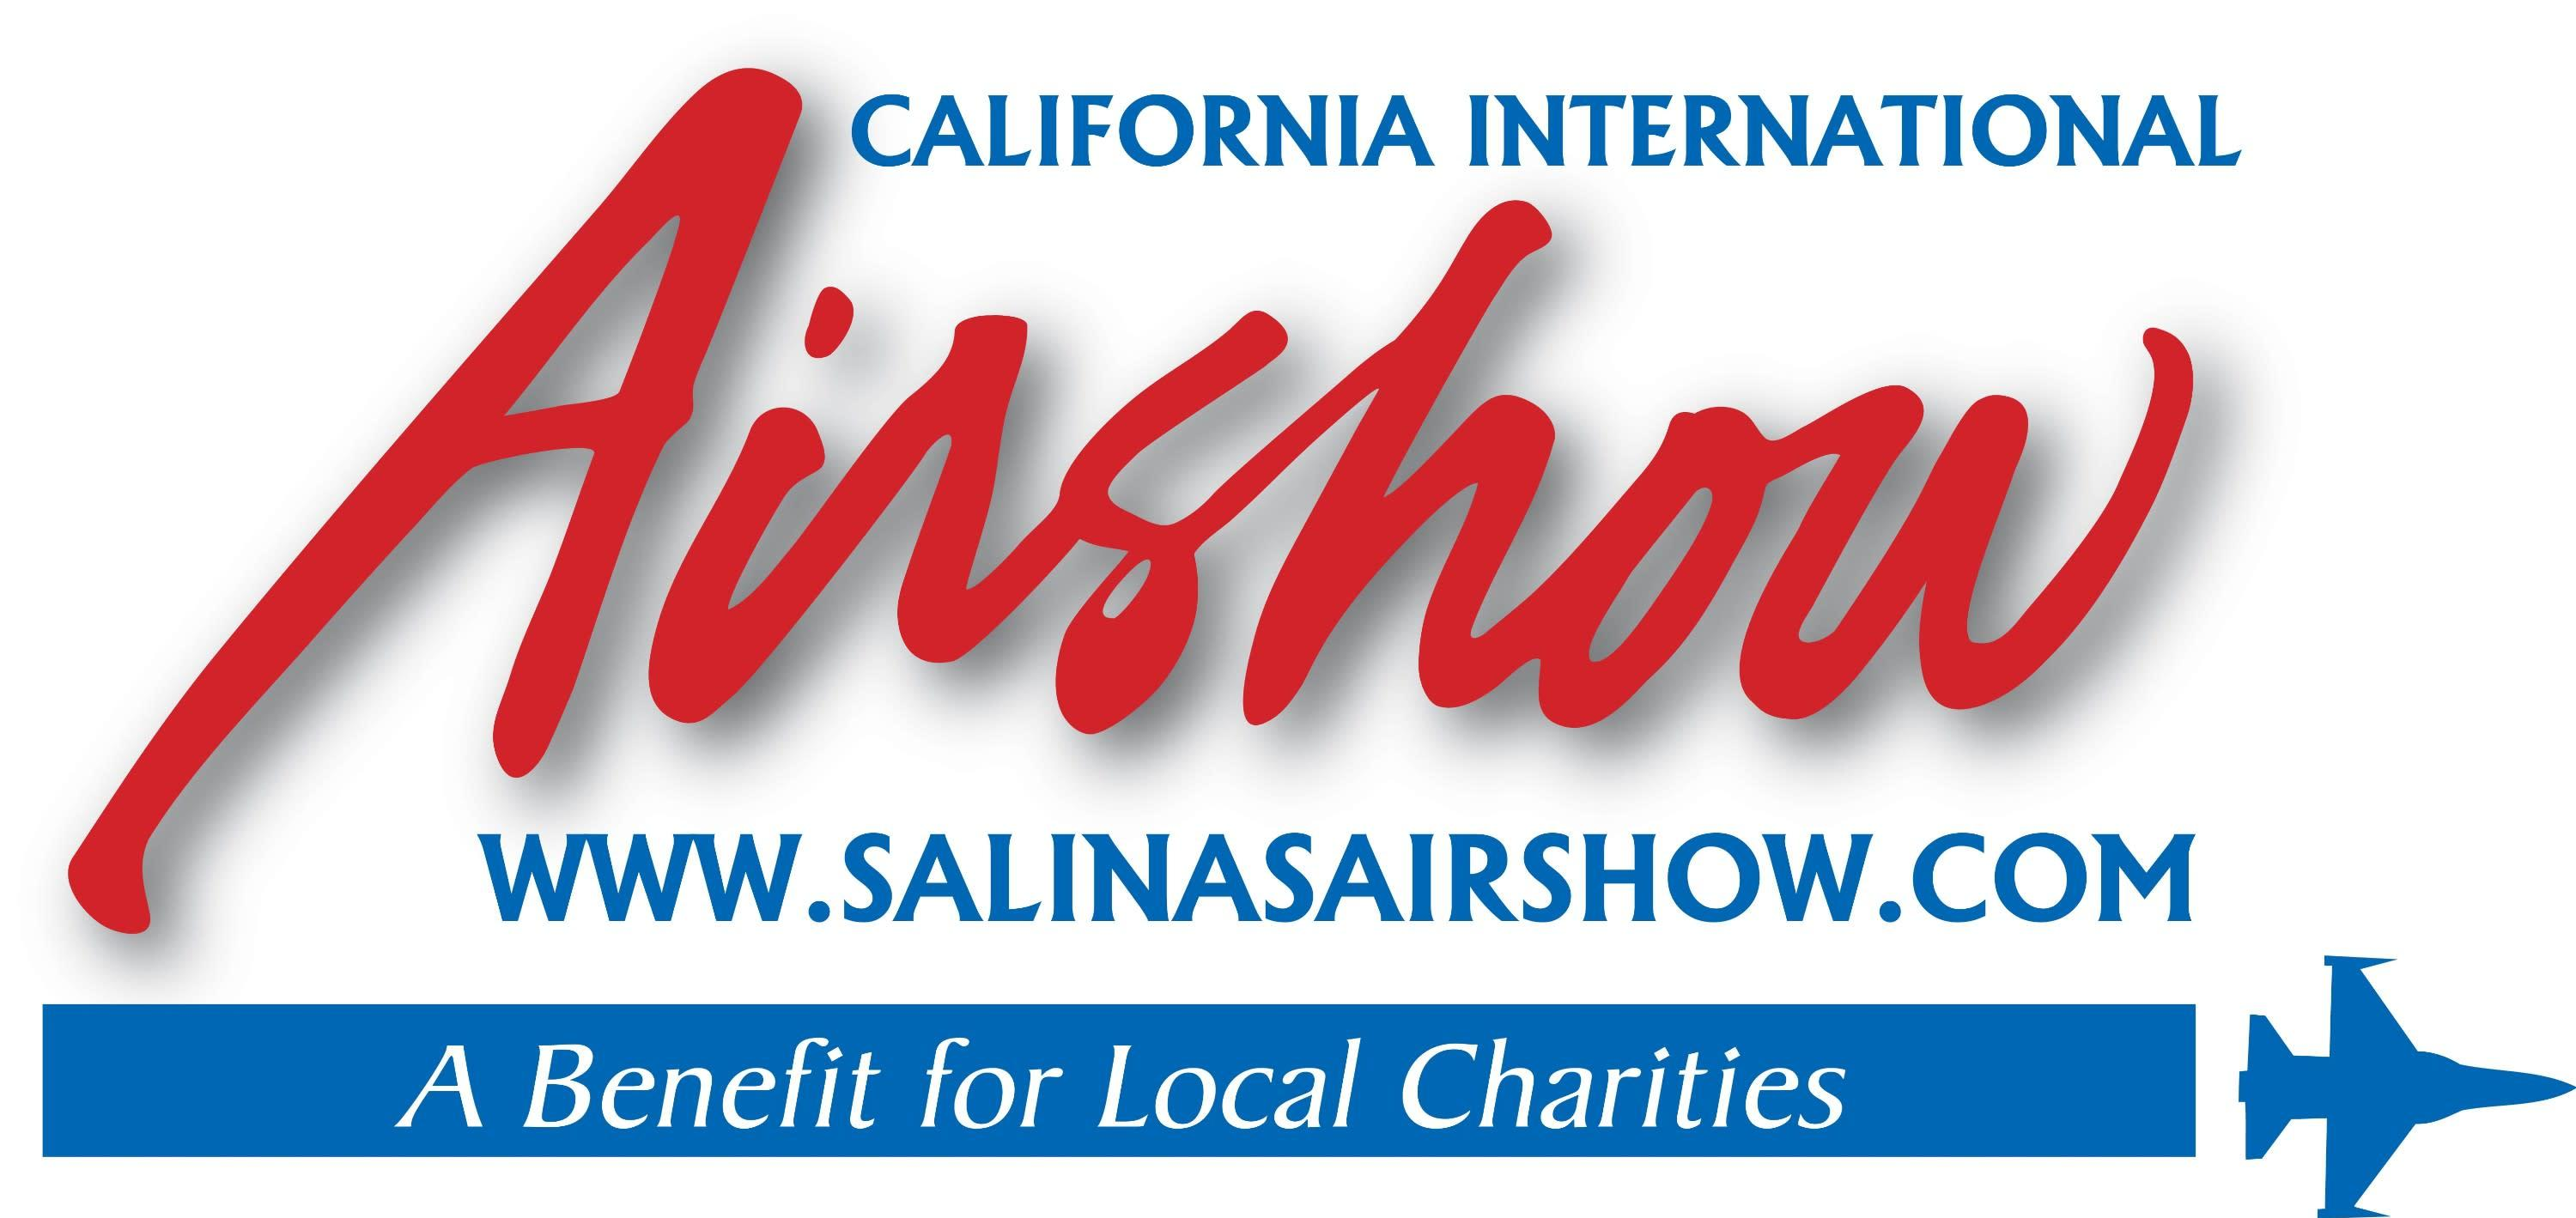 California International Airshow